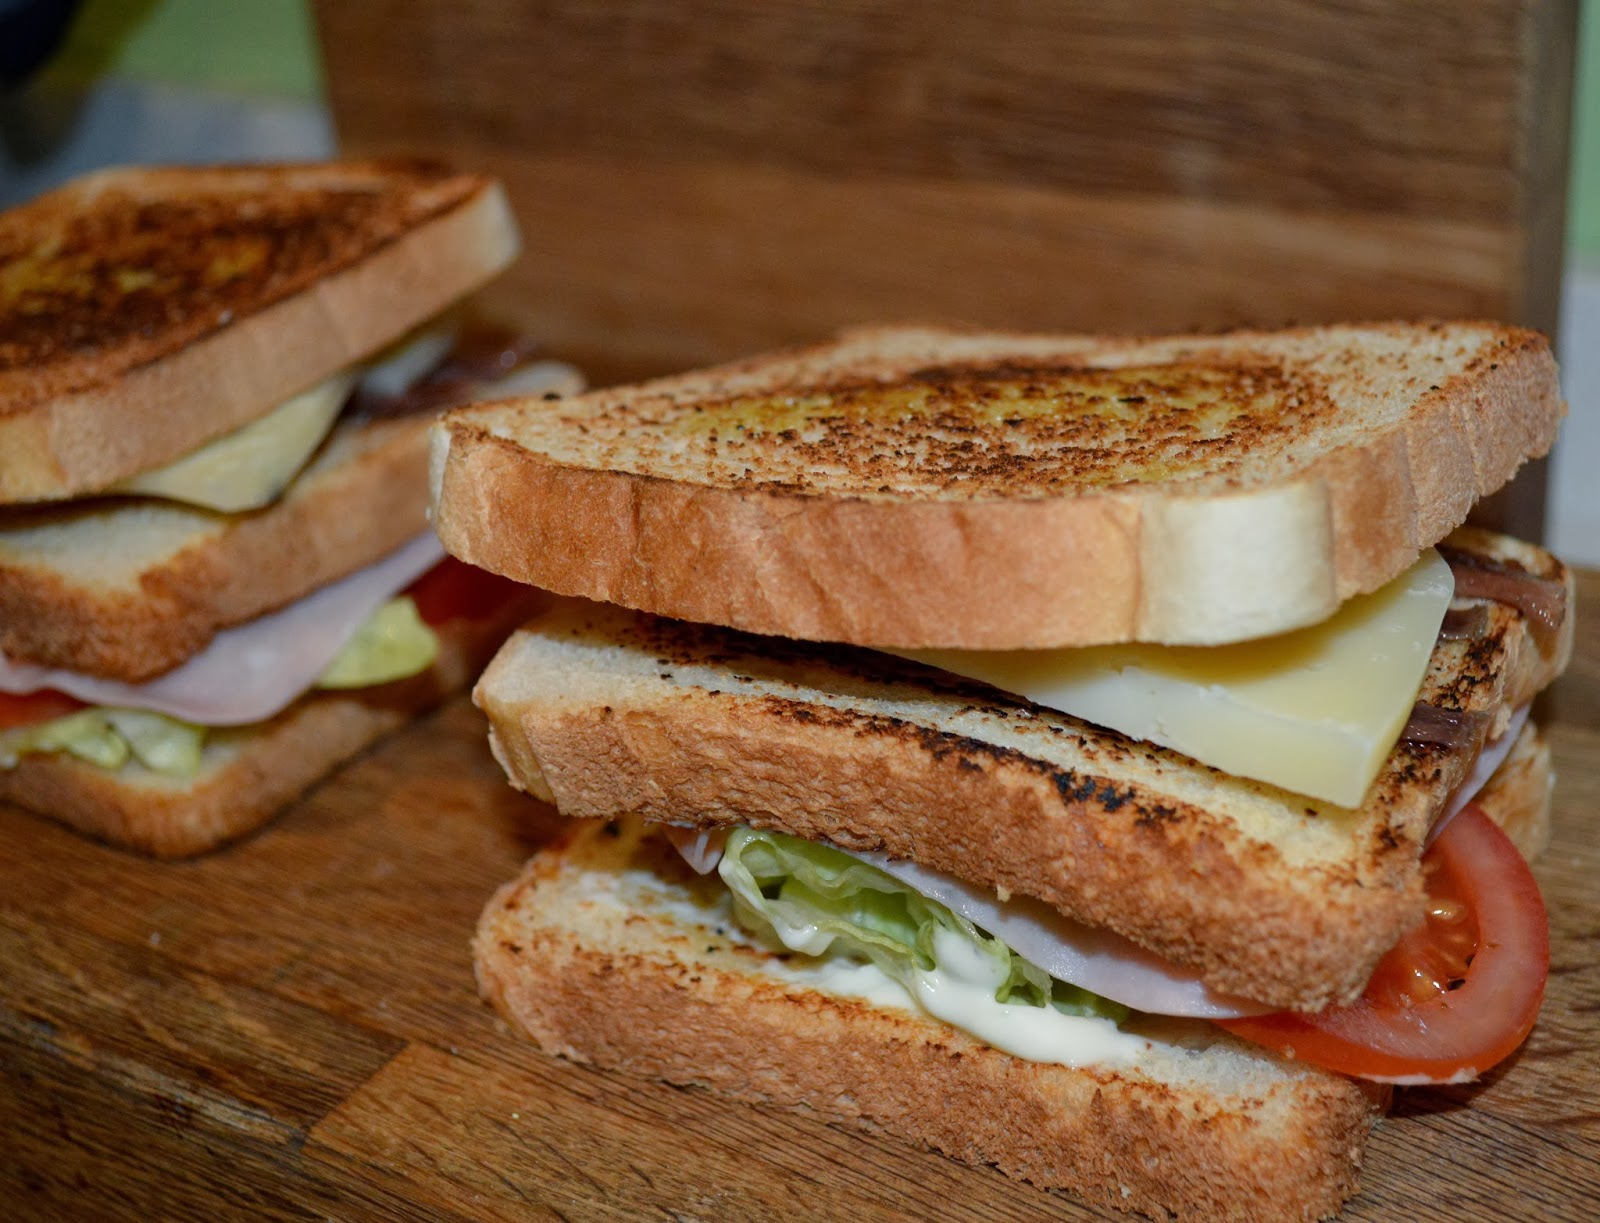 Sandwiches con sabor a anchoa y queso